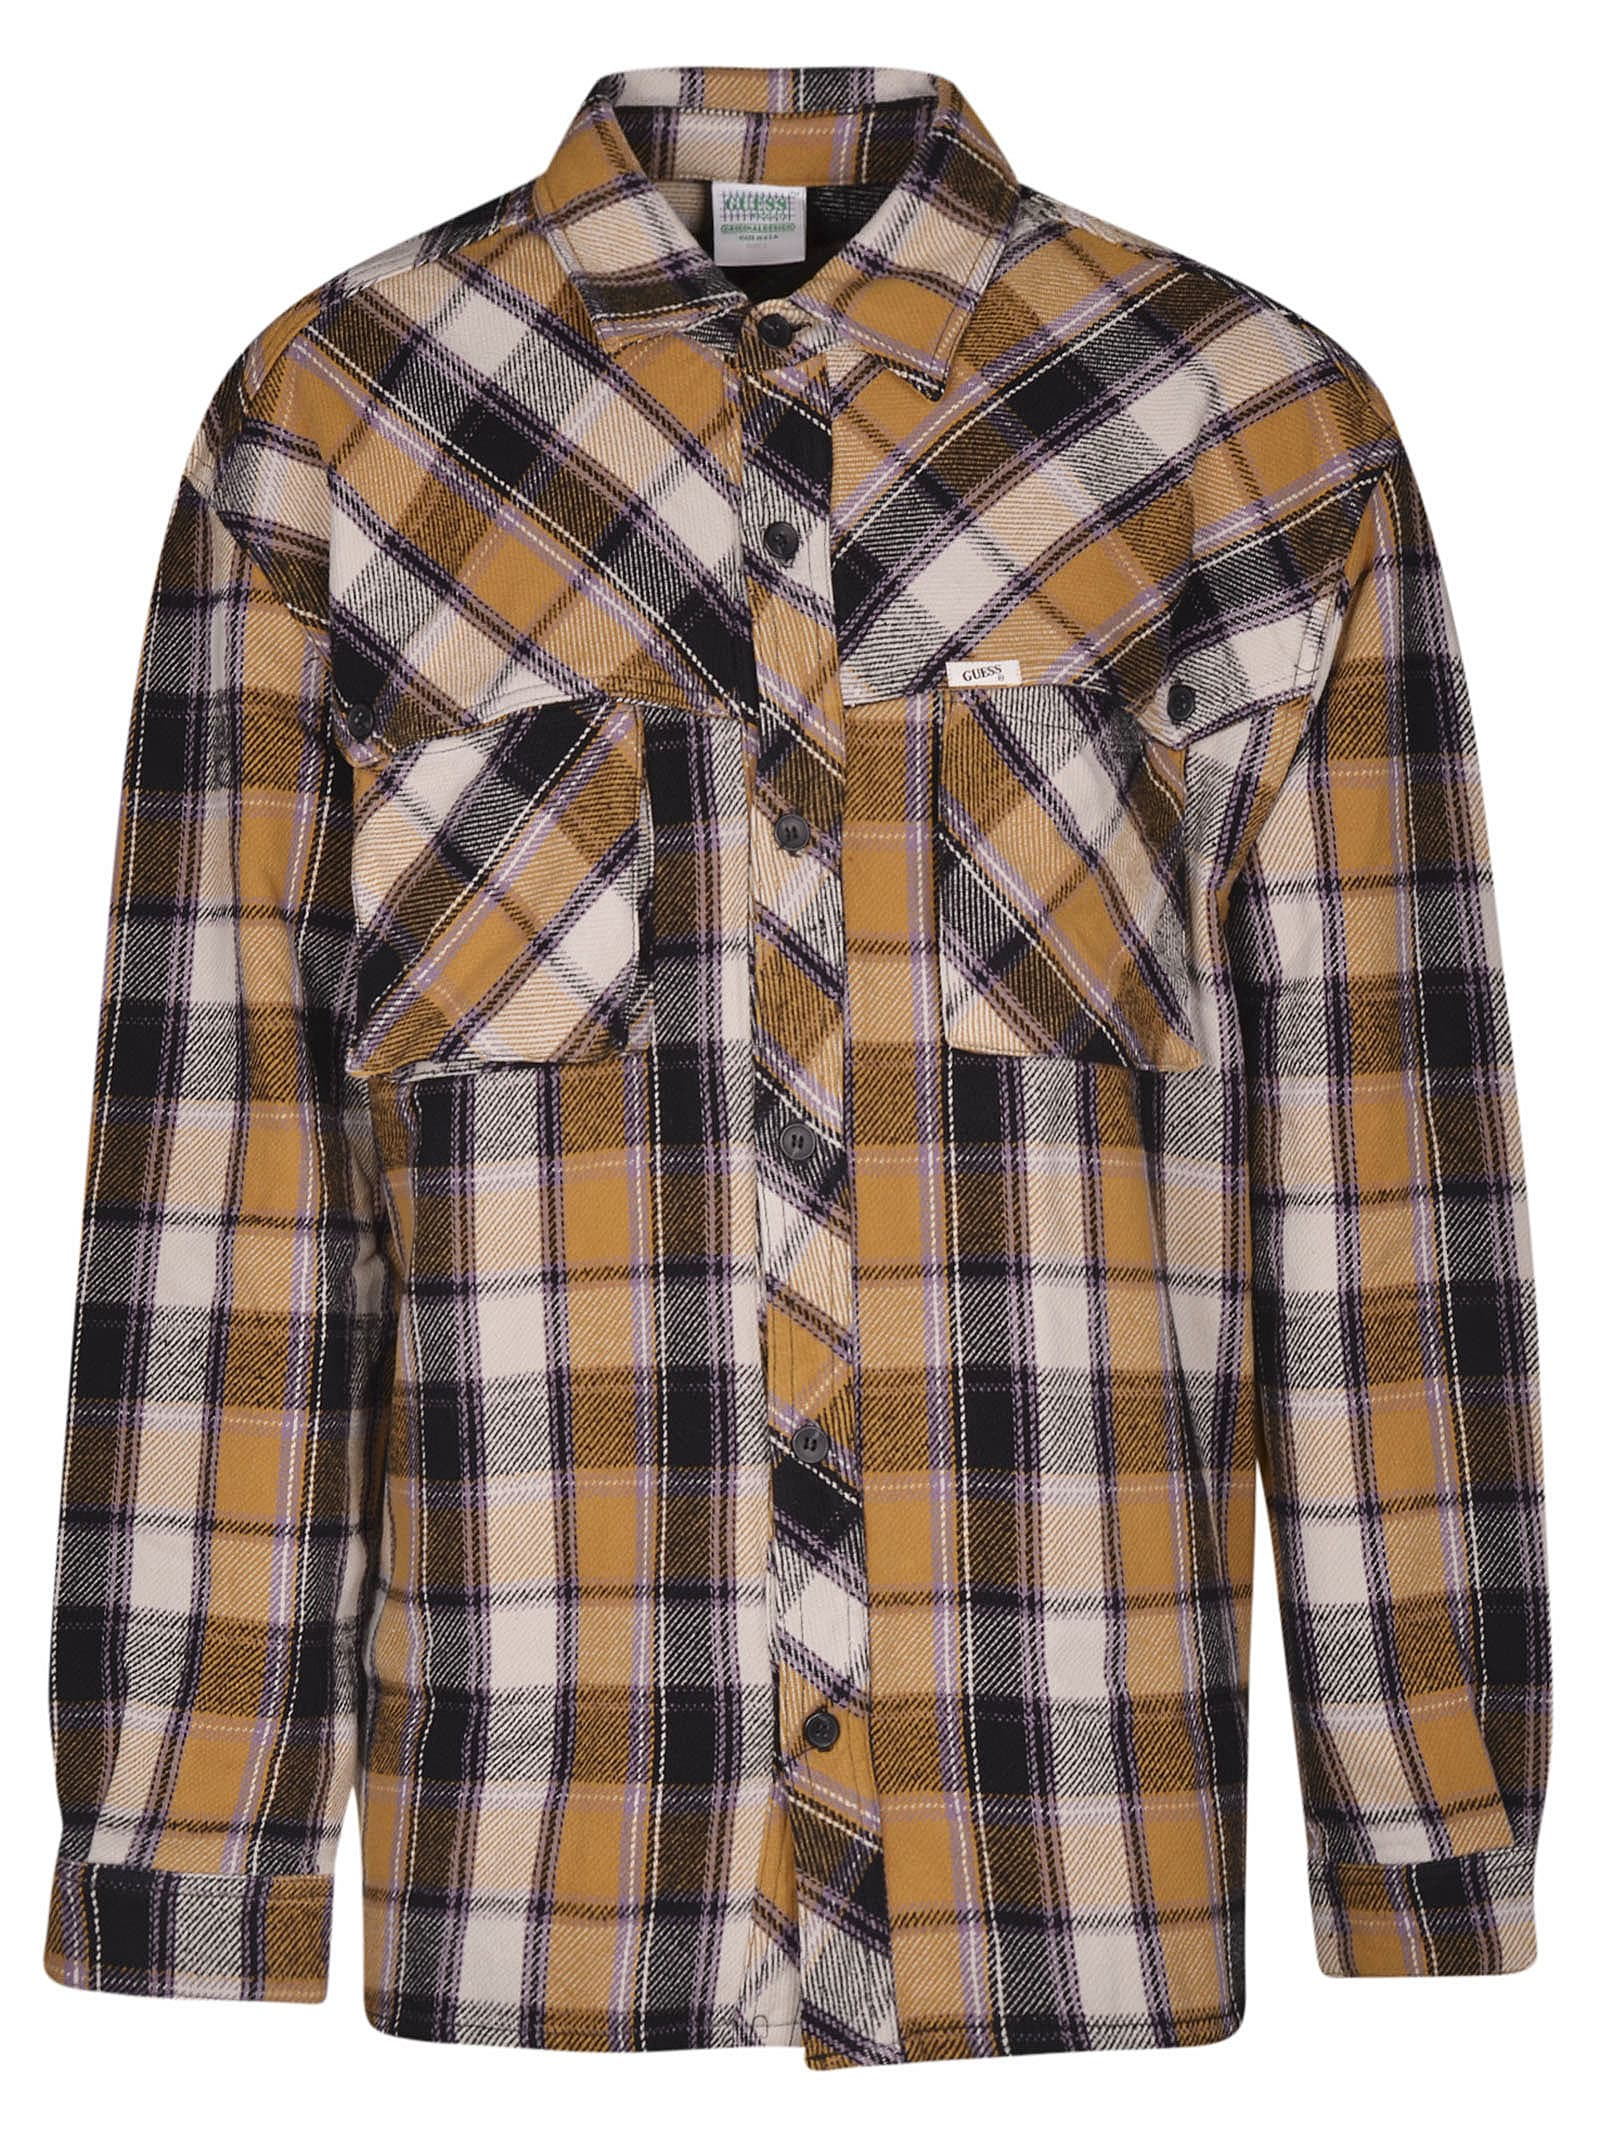 a669df2a77ad Guess Guess Plaid Flannel Storm Shirt - Thai curry multicolor ...